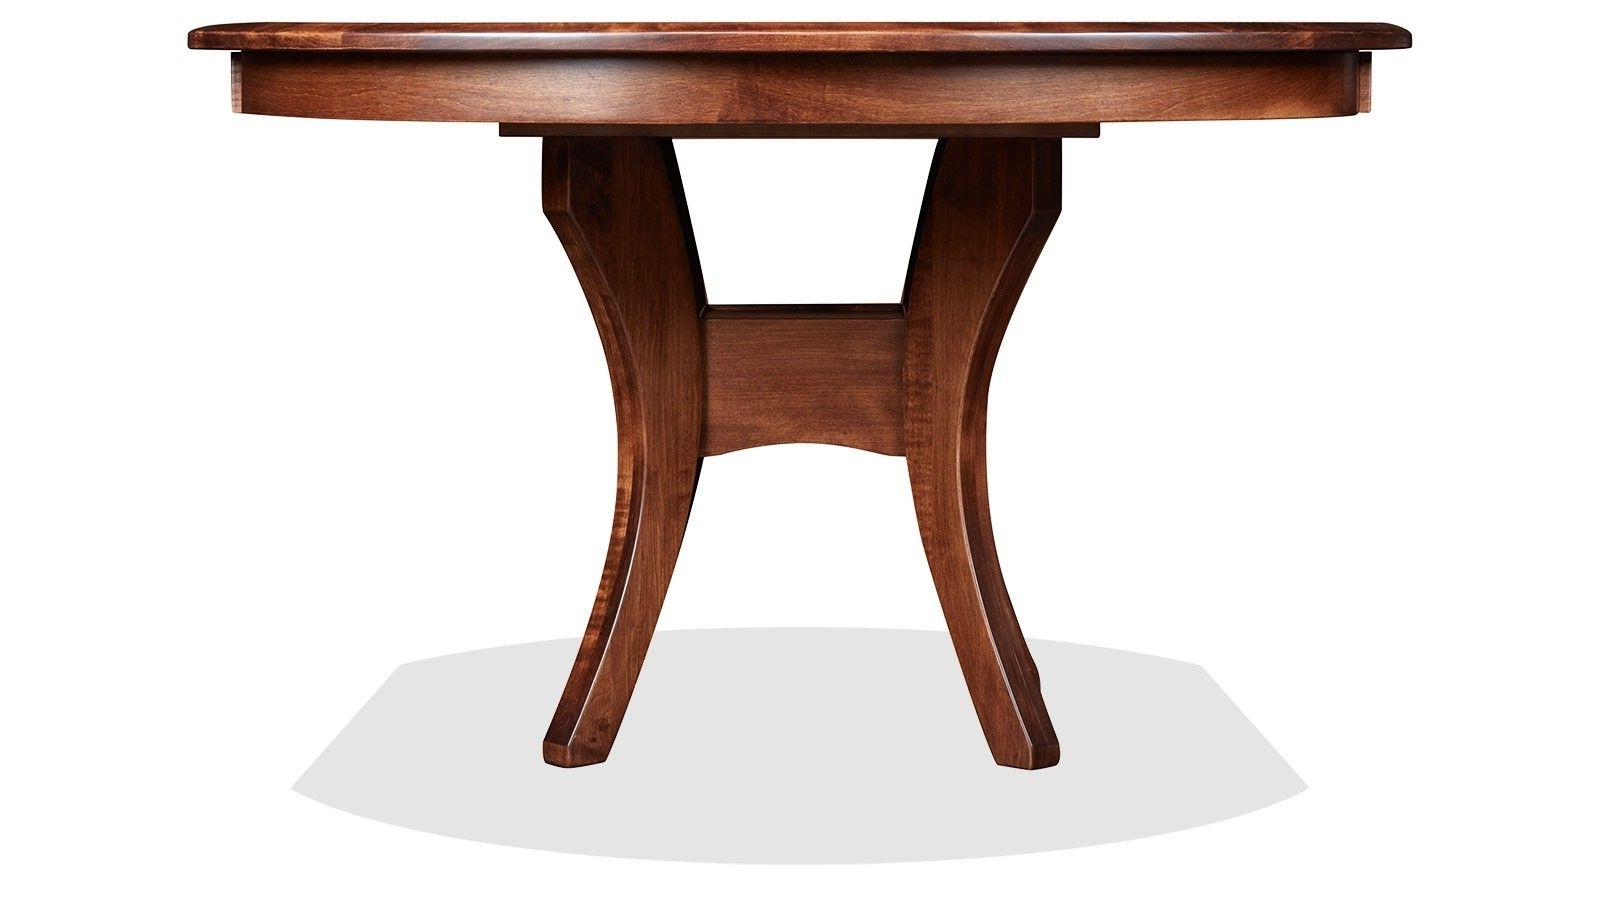 Fascinating Magnolia Home Top Tier Round Dining Tablejoanna Throughout Preferred Magnolia Home Top Tier Round Dining Tables (View 3 of 25)